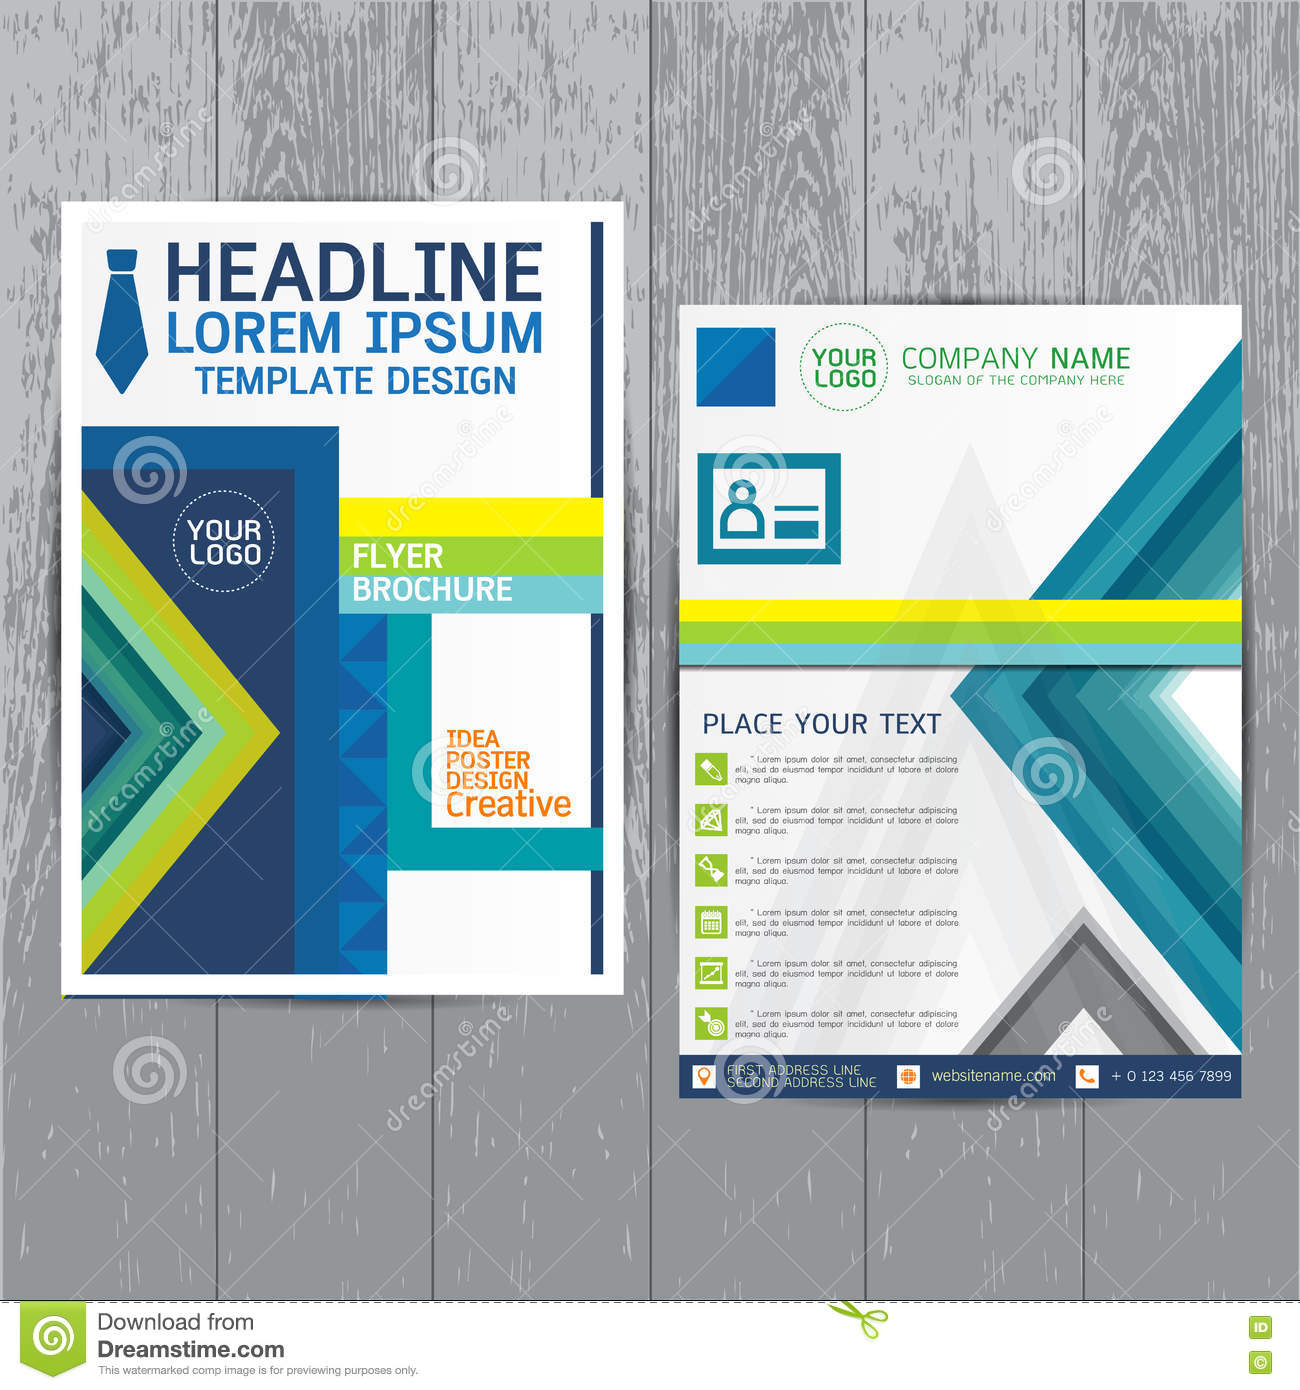 Poster design size - Abstract Annual Background Bookmarks Bright Brochure Business Cover Design Flyers Layout Leaflet Modern Pencil Poster Presentation Report Size